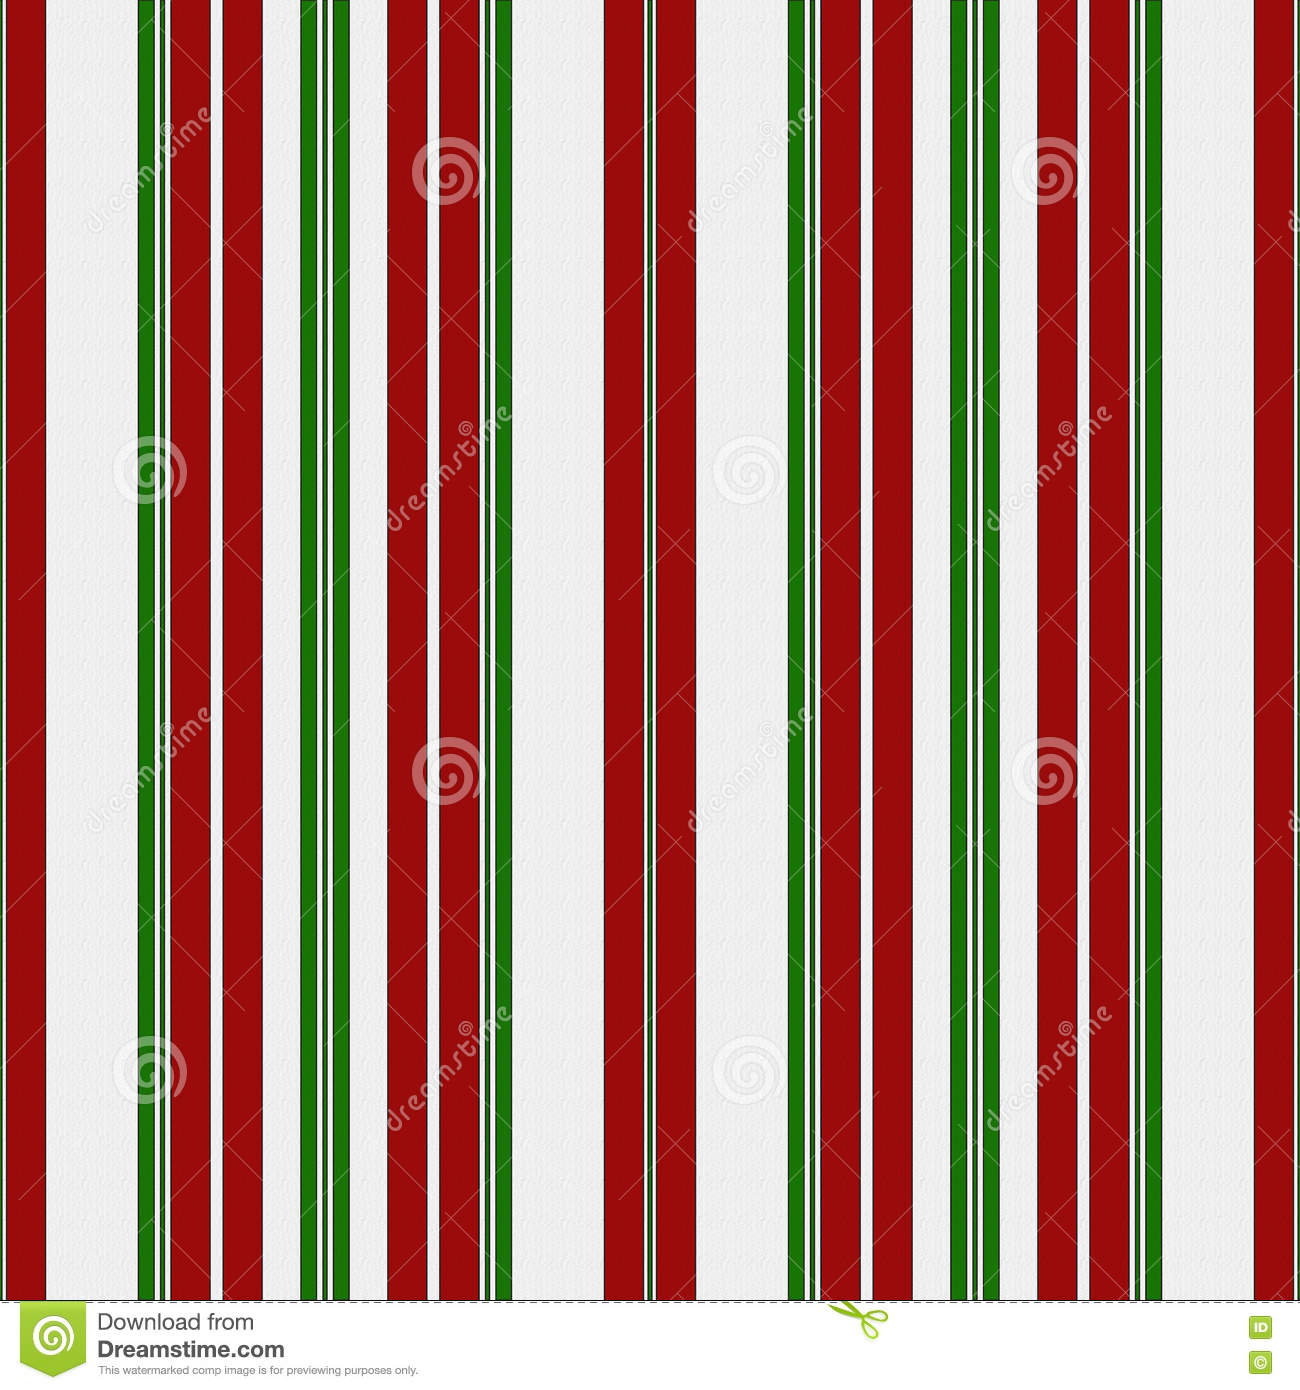 red green and white striped fabric background stock